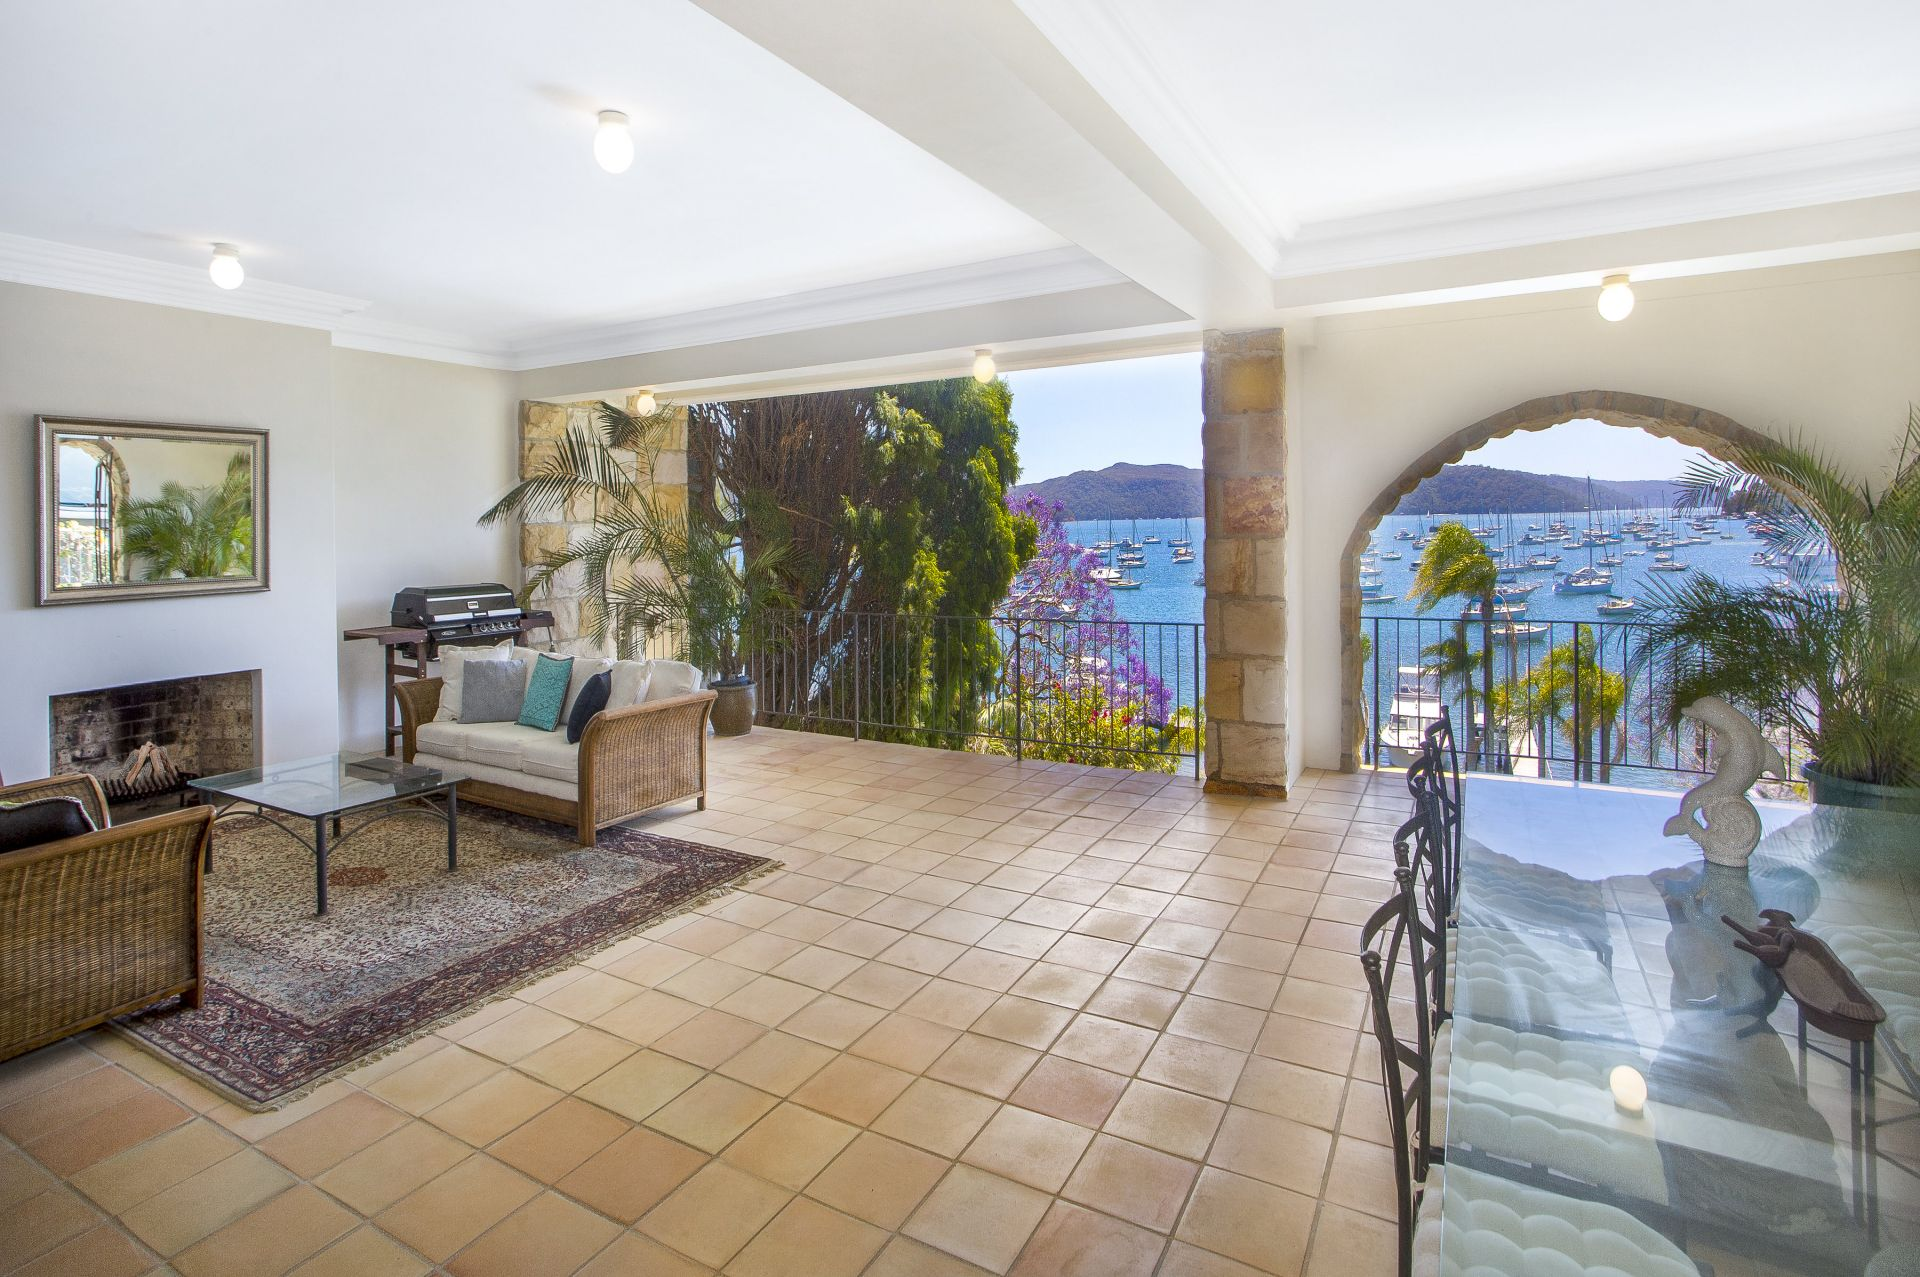 Additional photo for property listing at 'La Dolce Vita' - Mediterranean-inspired waterfront 98 Prince Alfred Parade Newport, New South Wales,2106 Австралия